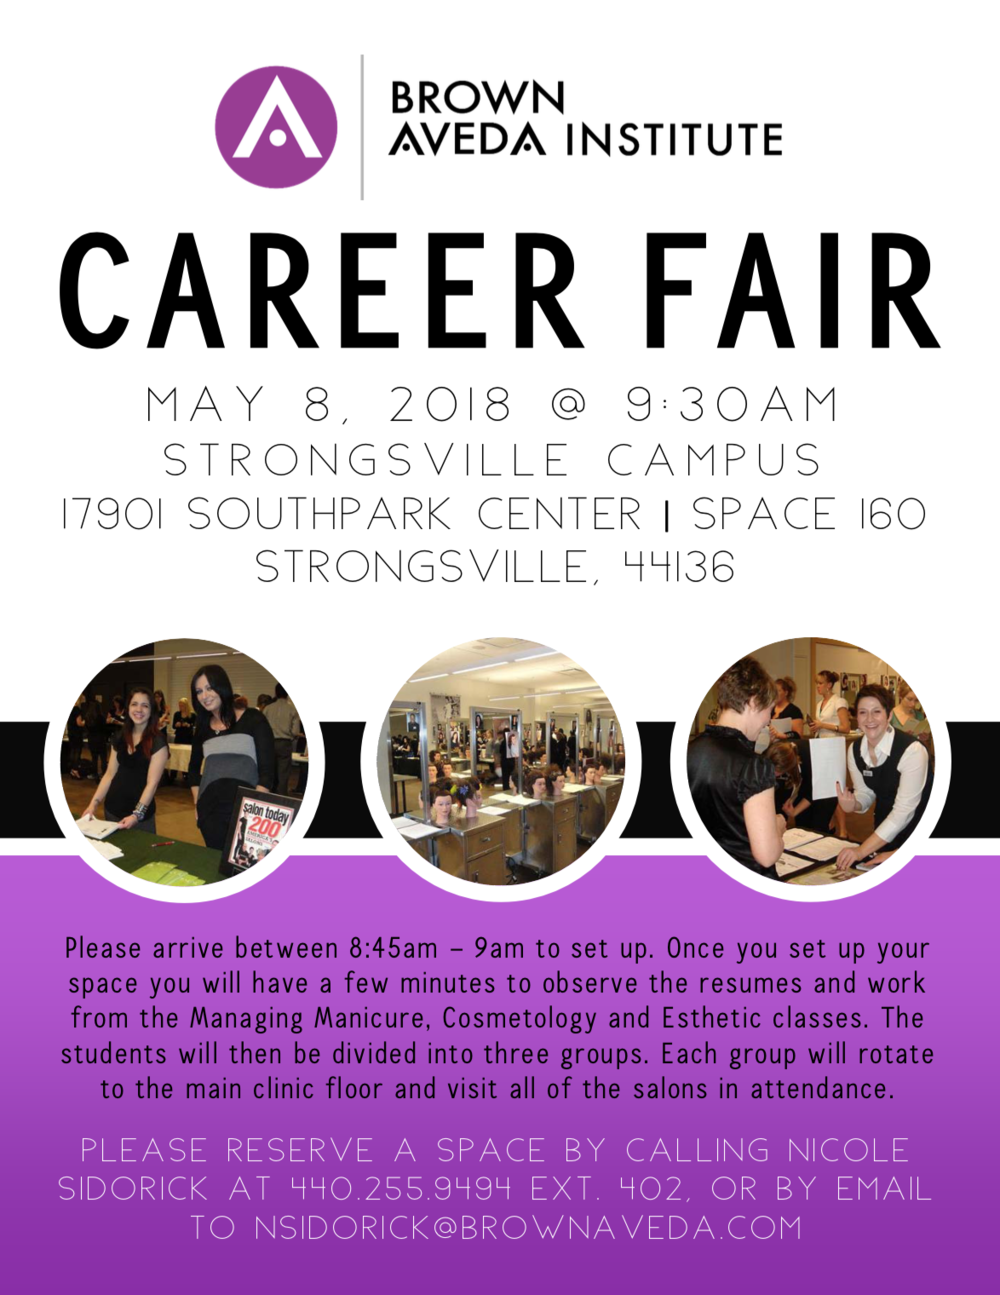 career fair brown aveda institute strongsville